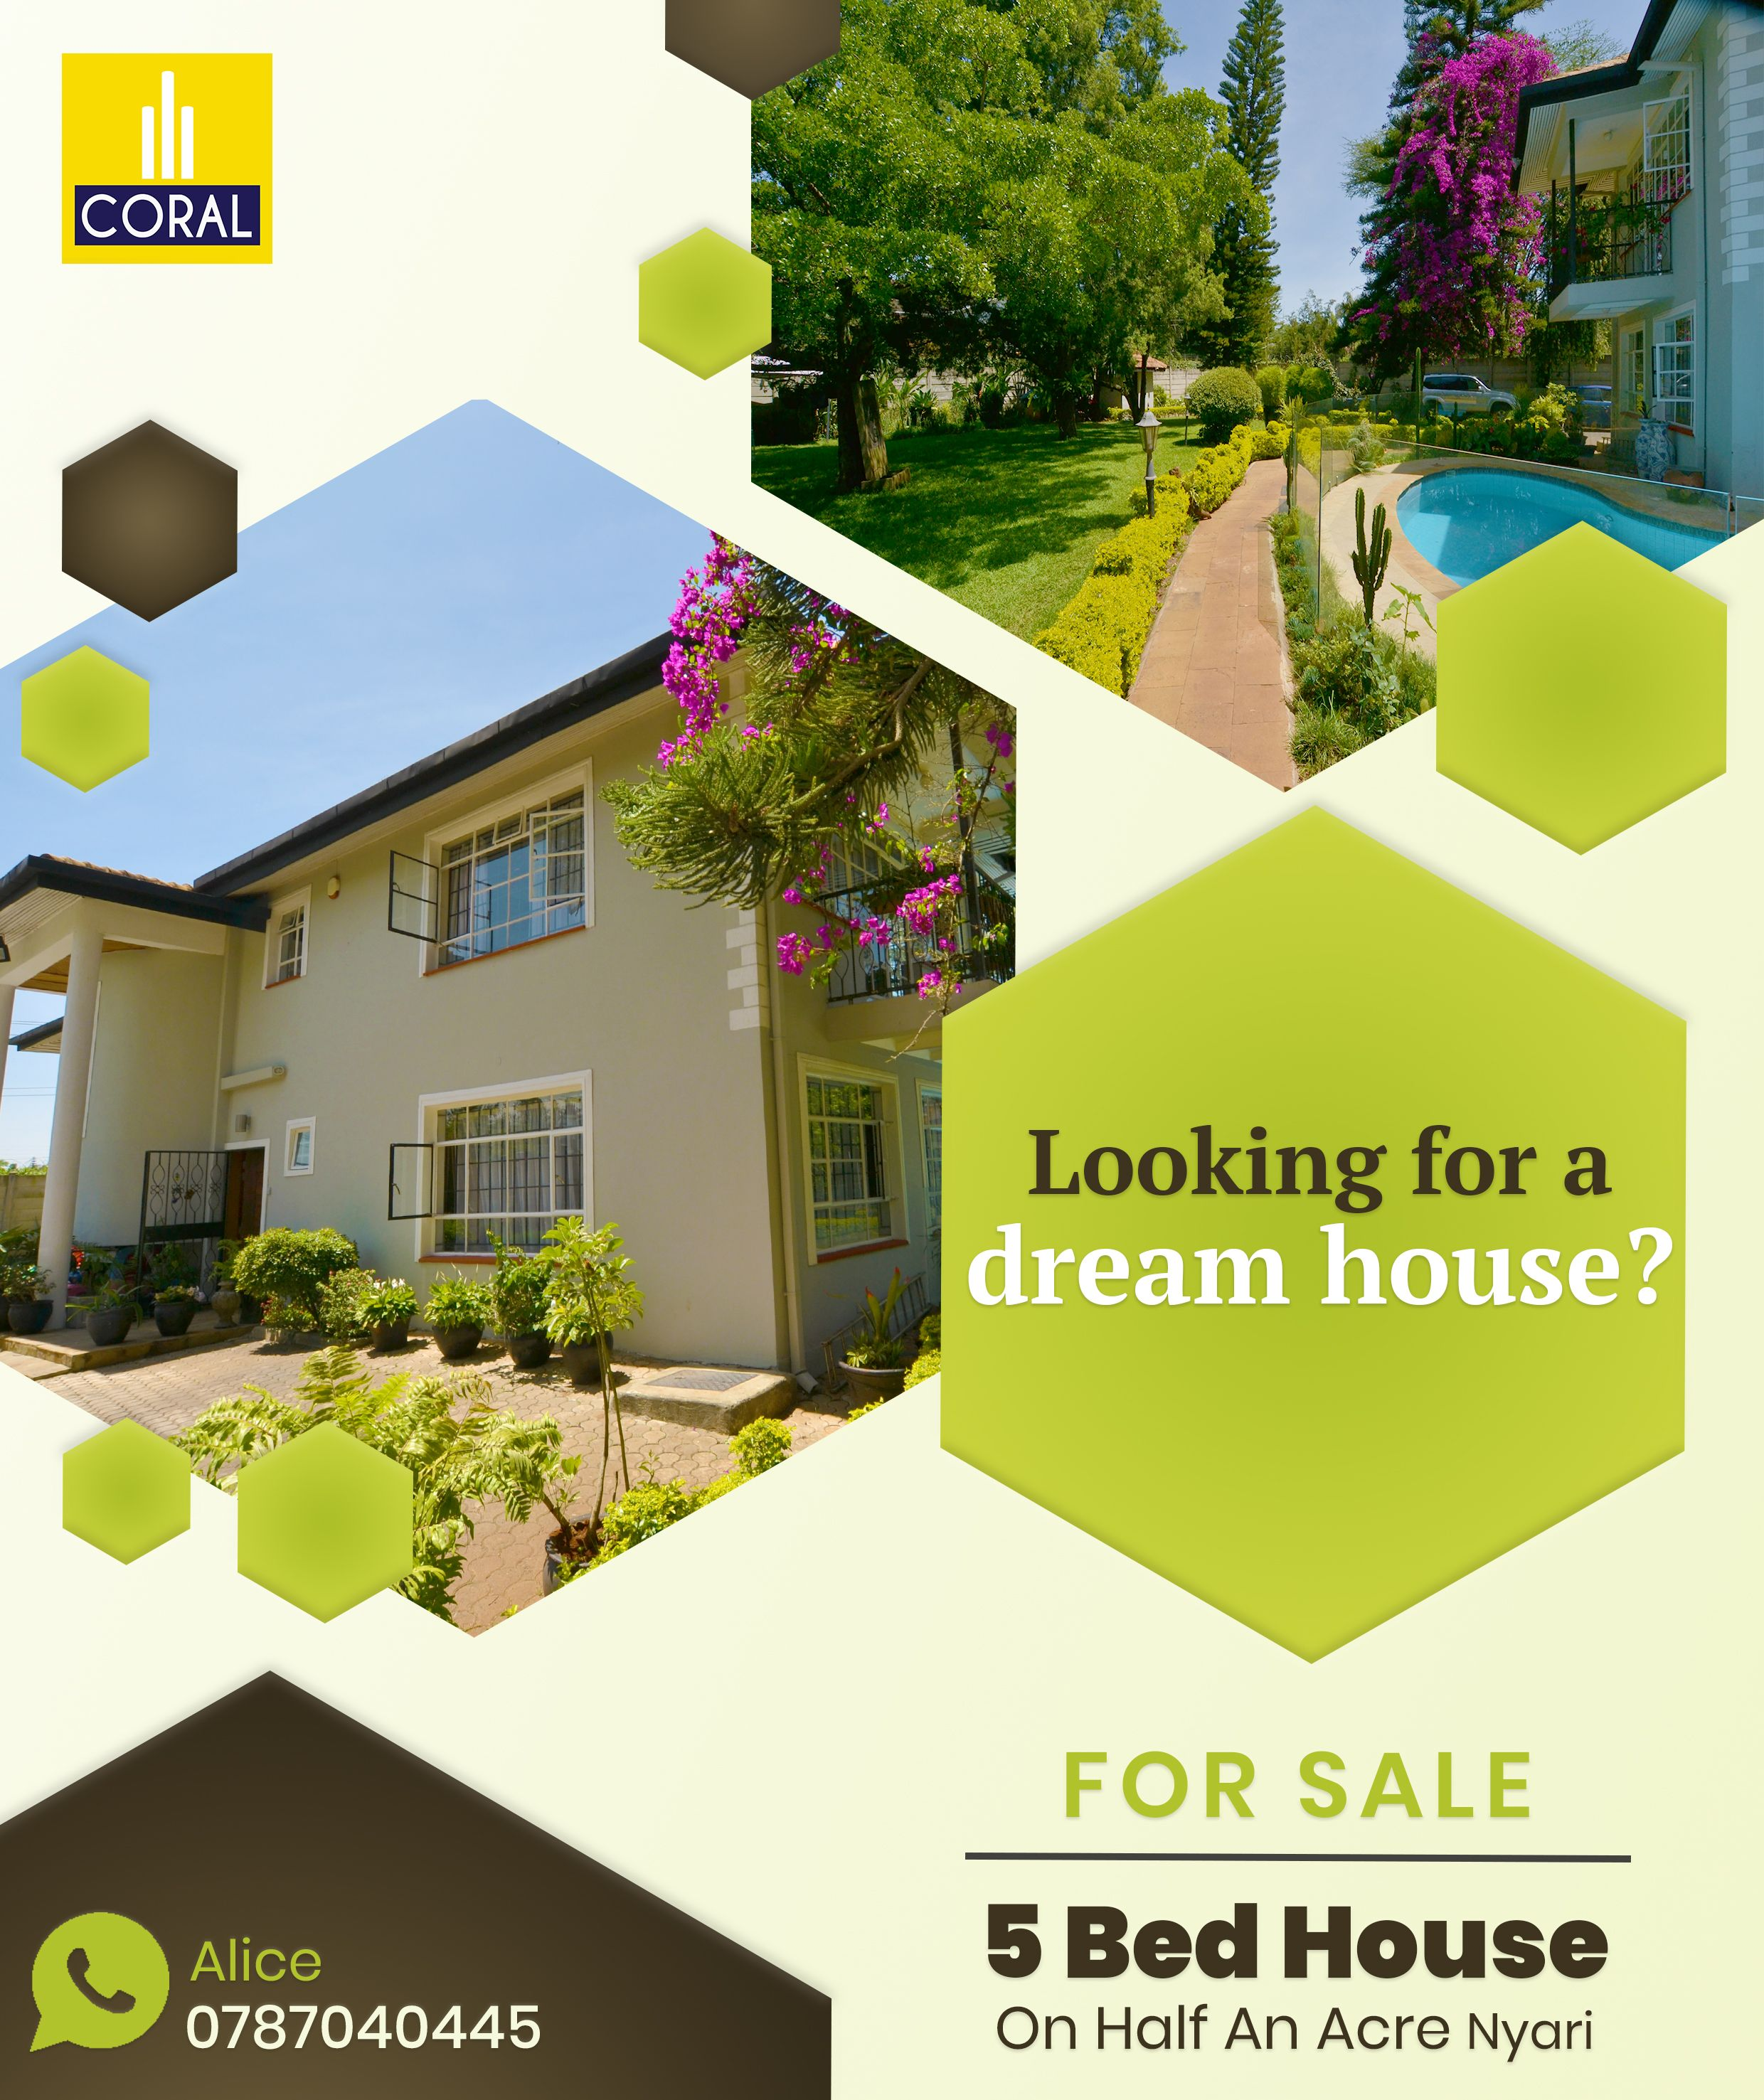 5 Bedroom House On Half An Acre For Sale In Nyari East in